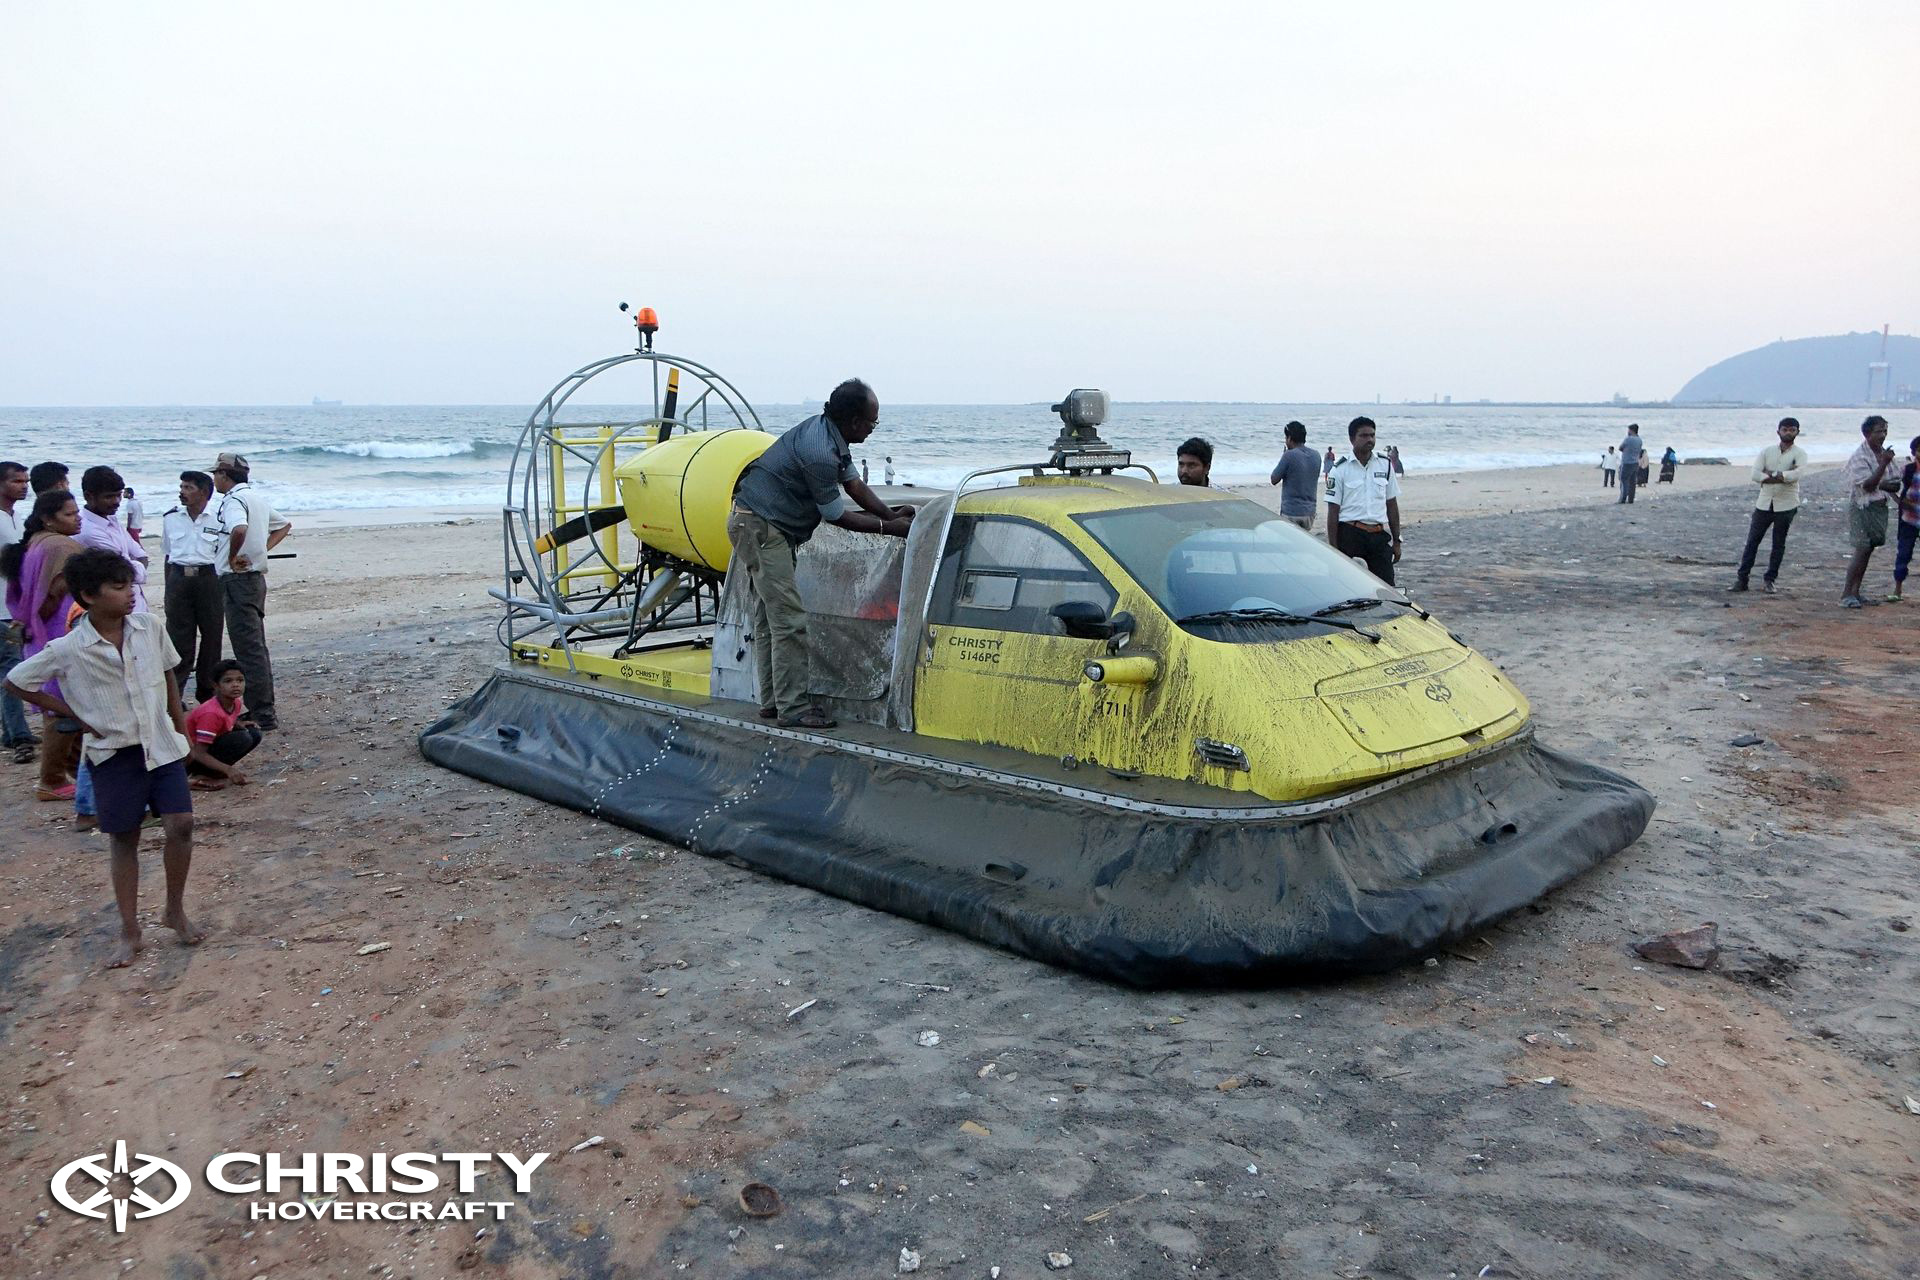 hovercraft-christy-5_7series-09.jpg | фото №55